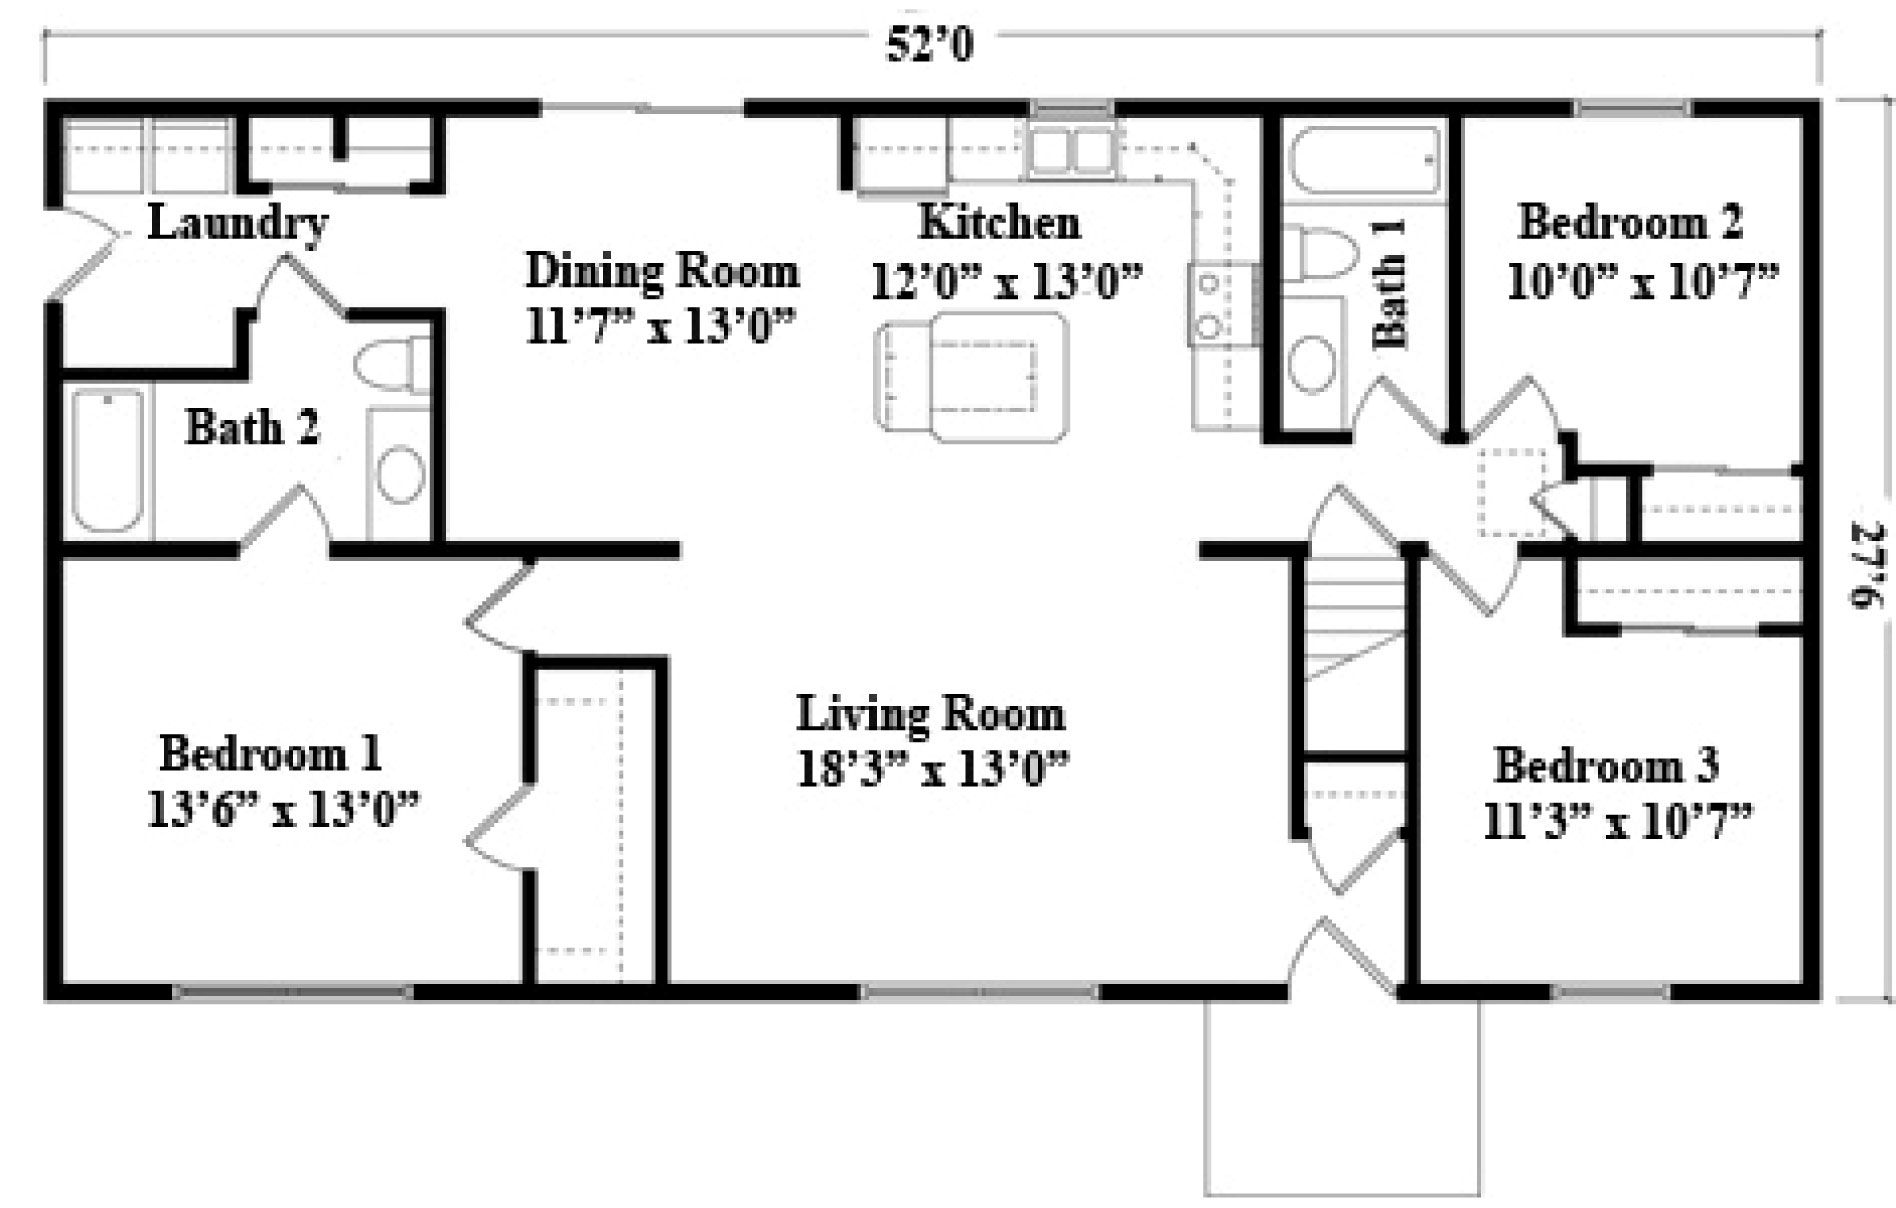 24 X 52 Ranch House Plans Click On A Picture To View A Larger Image Small House Floor Plans Tiny House Plans House Plans